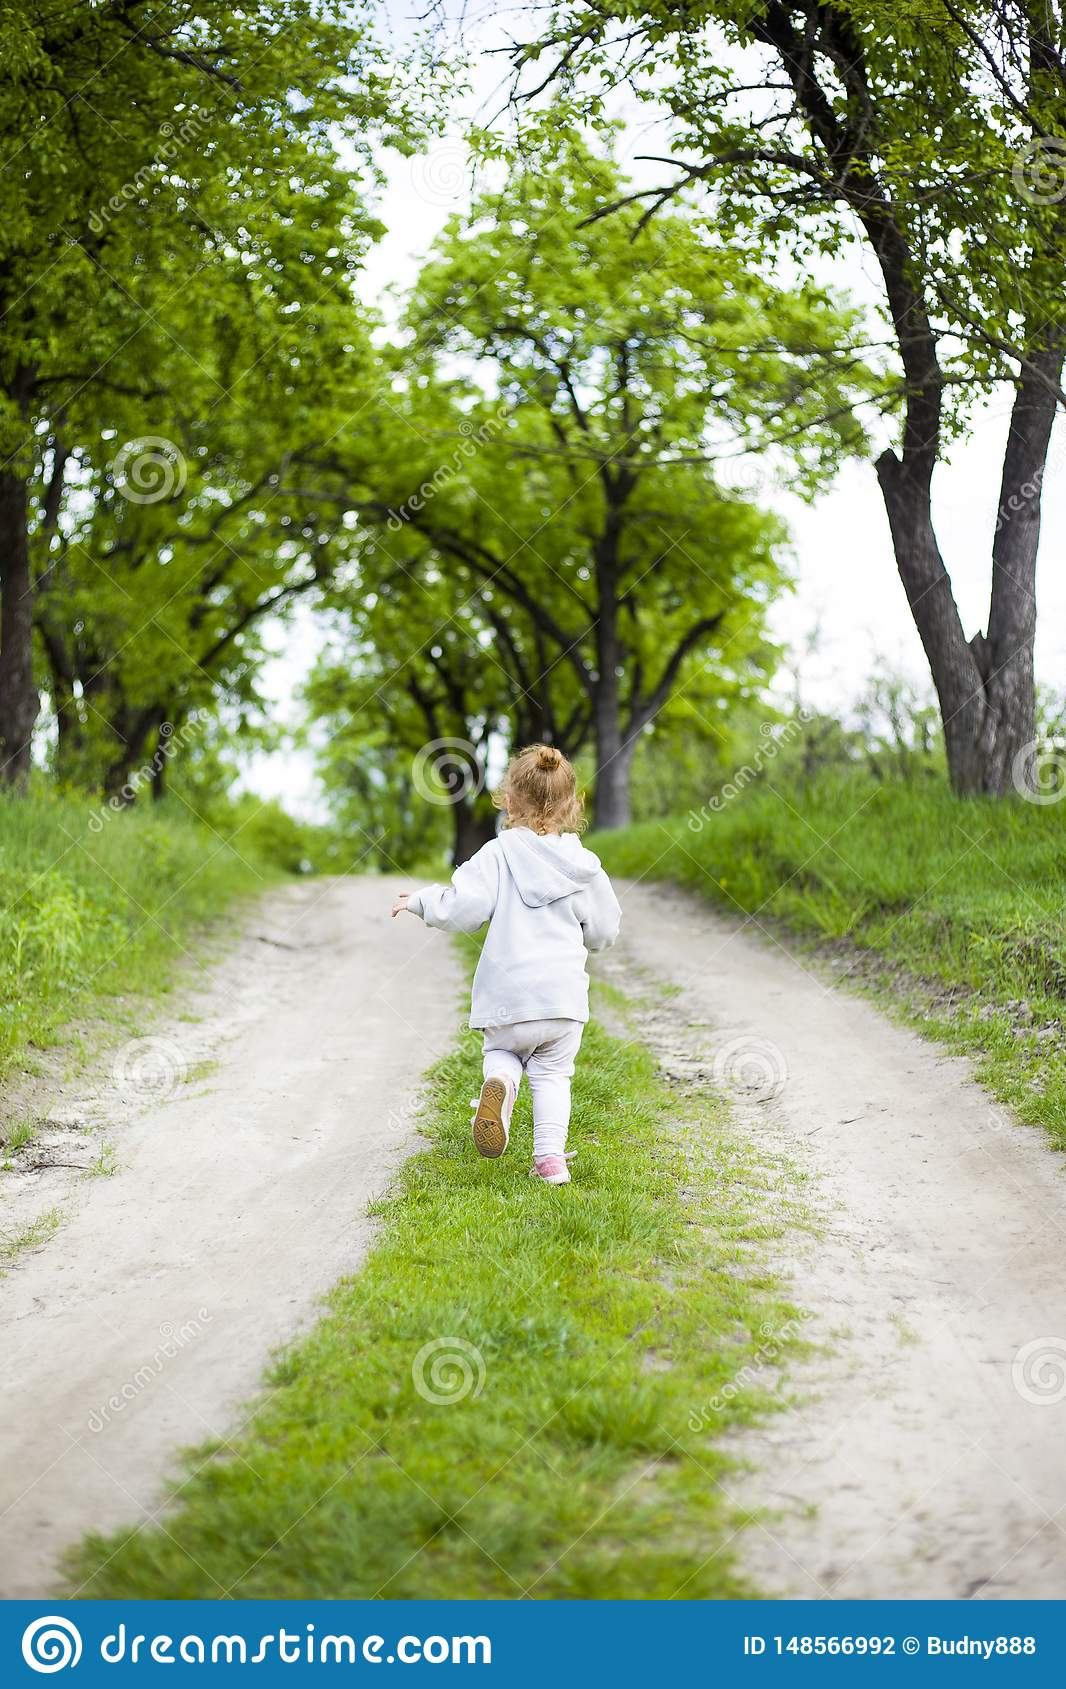 Little cute redhead girl runs along a dirt road with grass and laughs